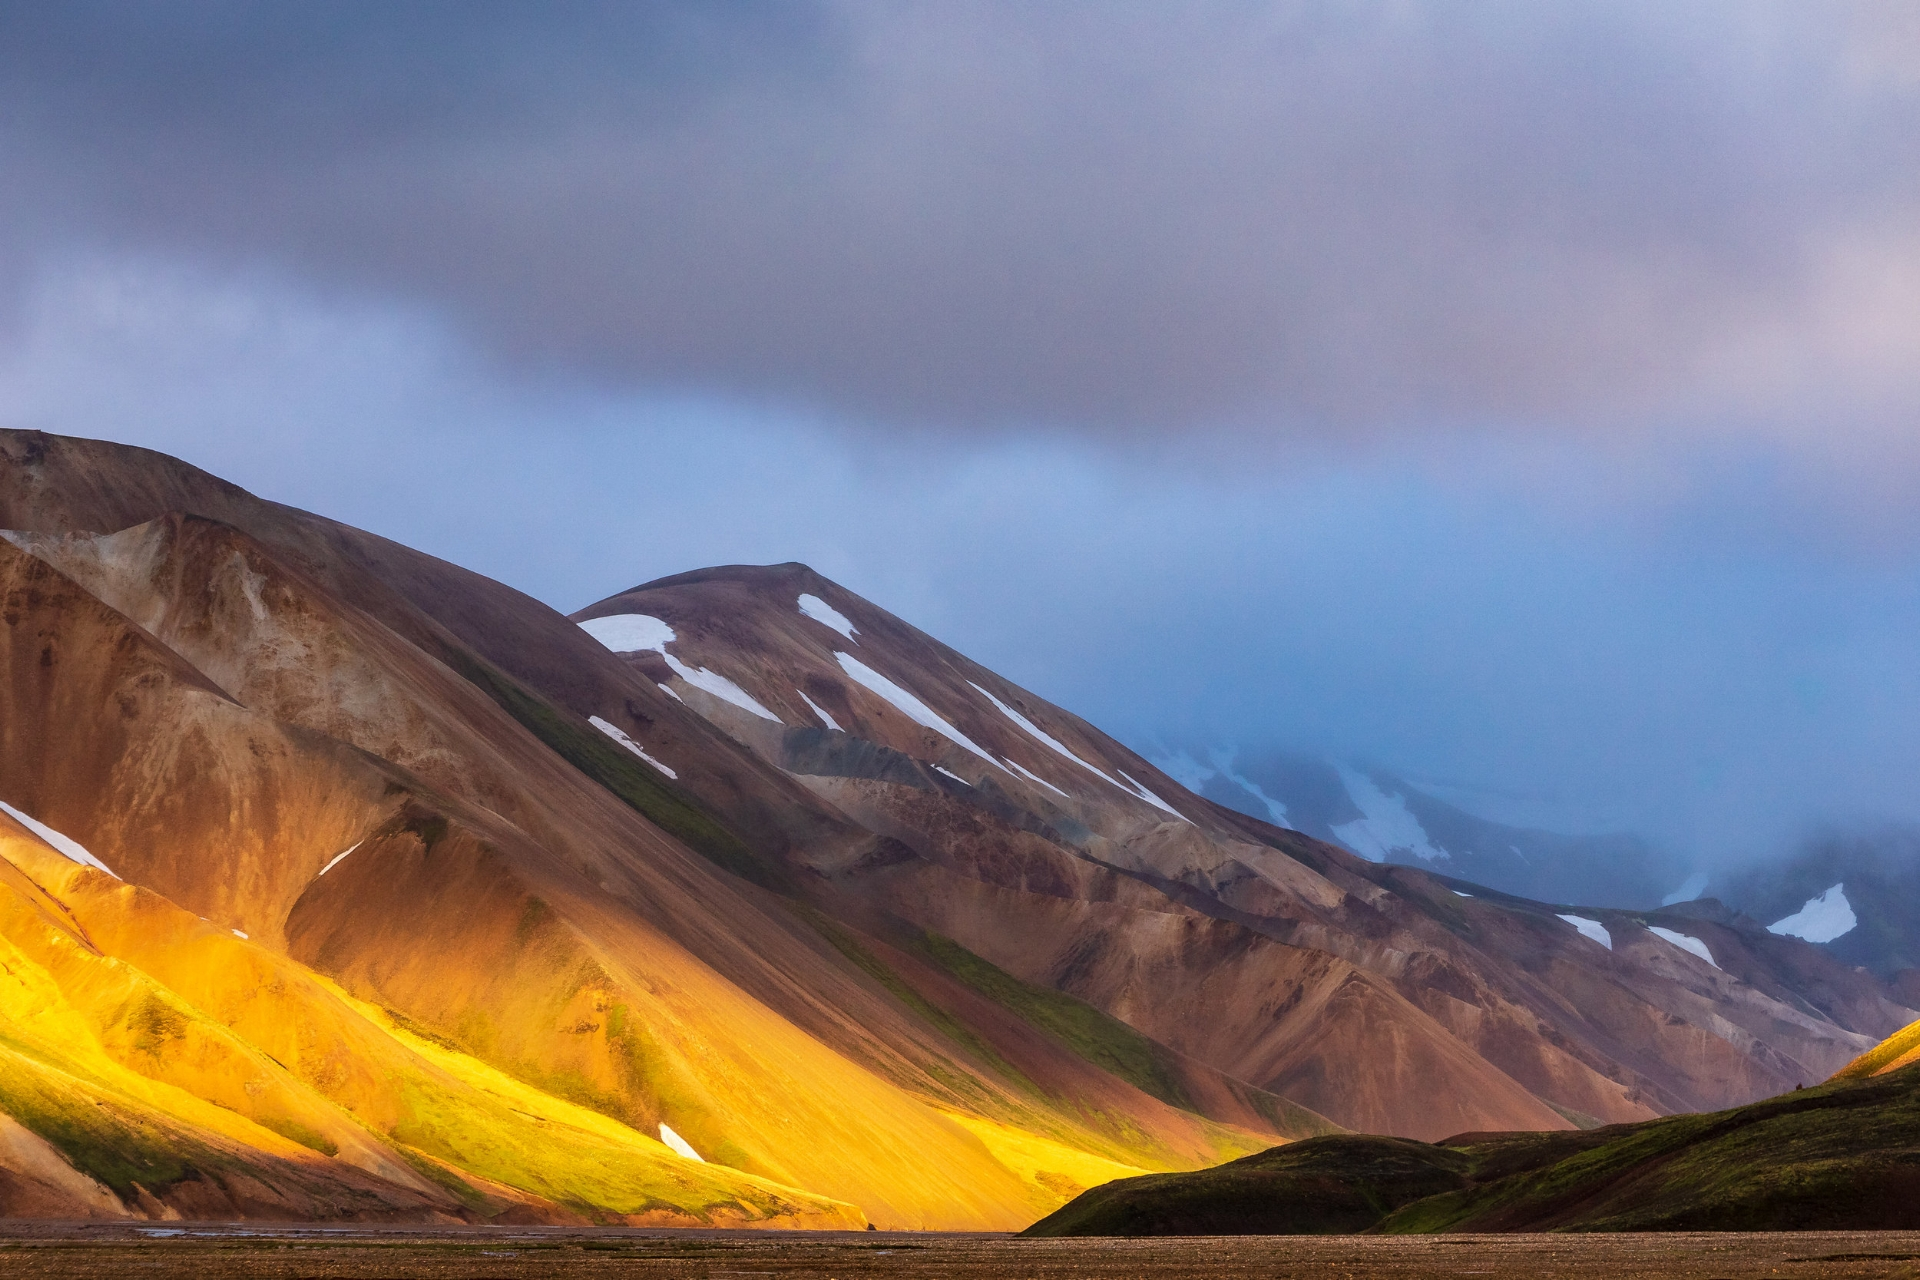 Landmannalaugar shows its hidden mountains of gold when the sun starts setting. Have you been there before or maybe even hiked Laugavegur?